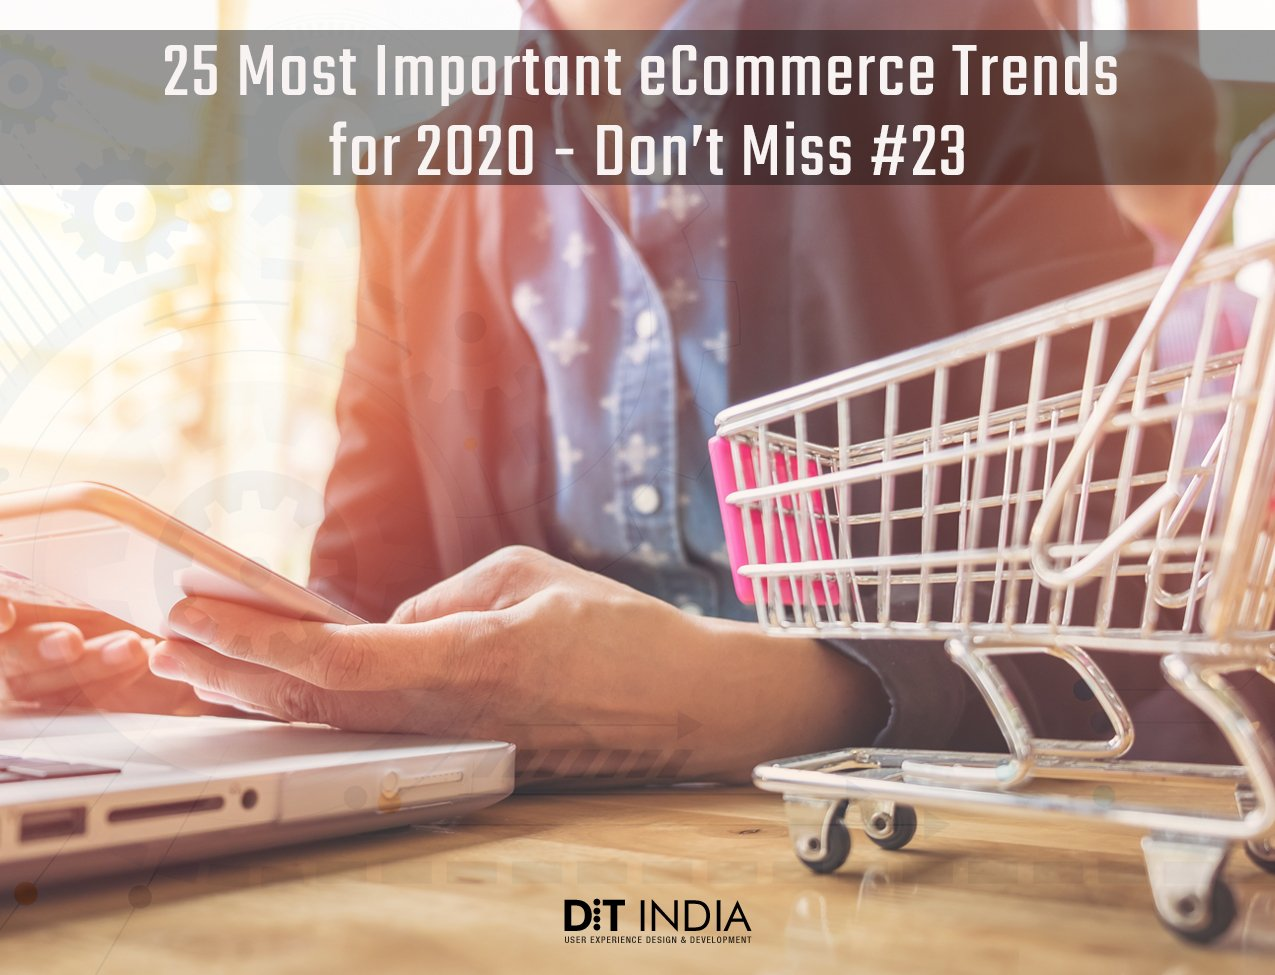 25 Most Important eCommerce Trends for 2020 – Don't Miss #23